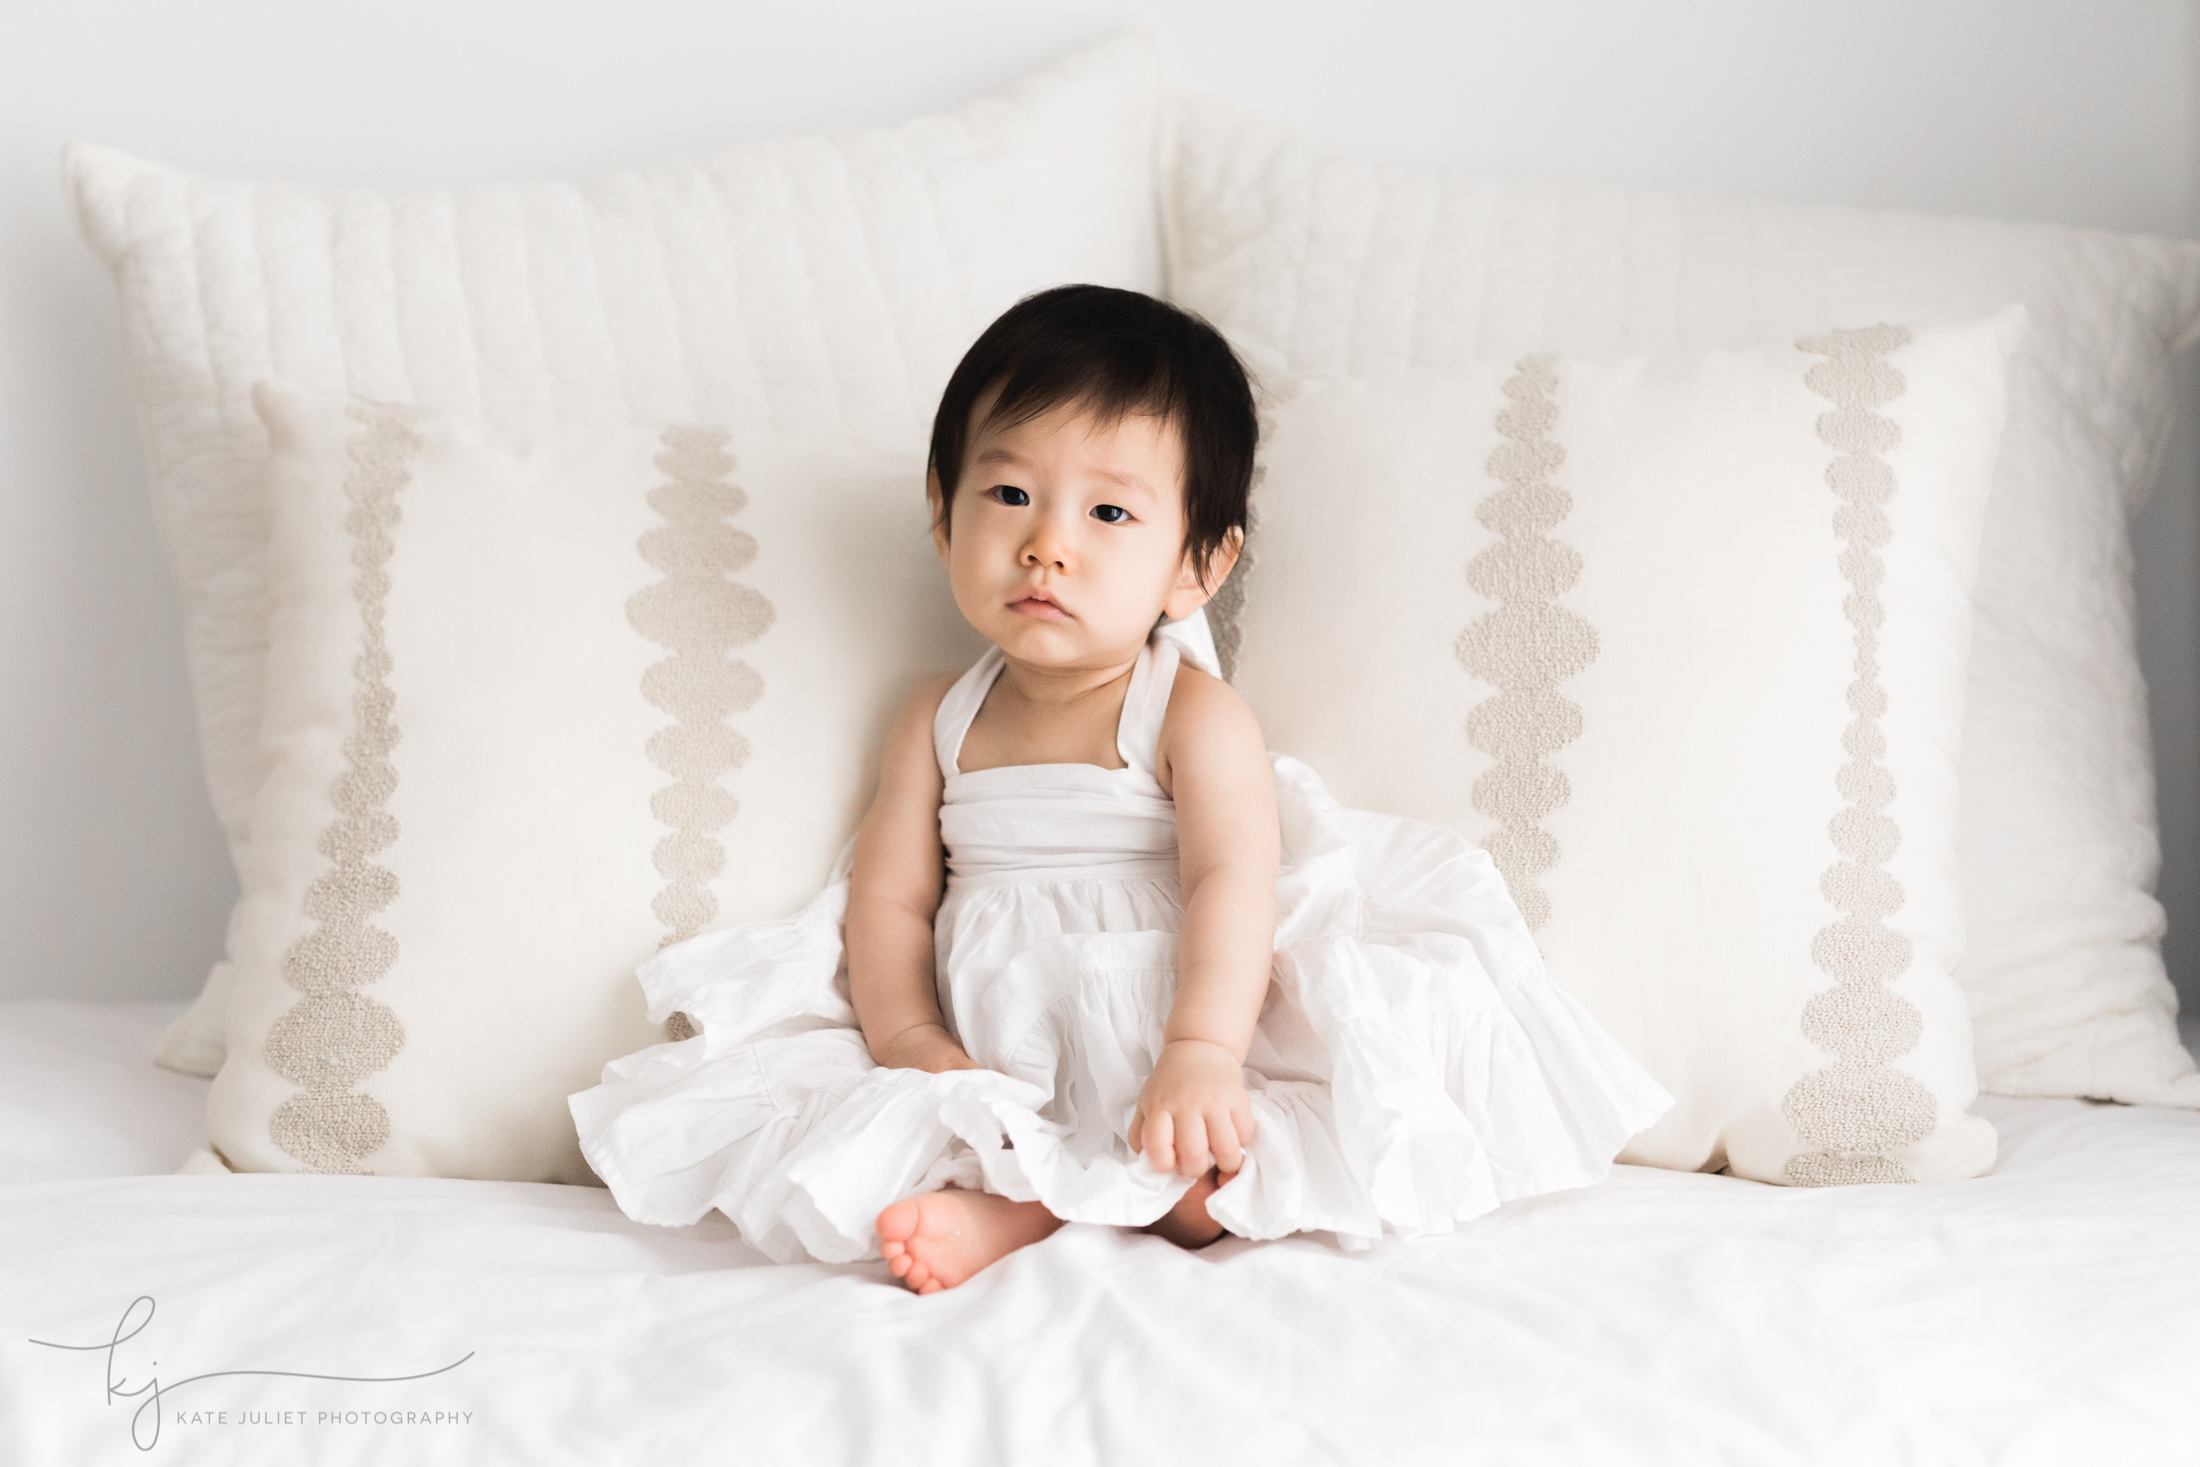 Lorton VA Baby Photographer | Kate Juliet Photography